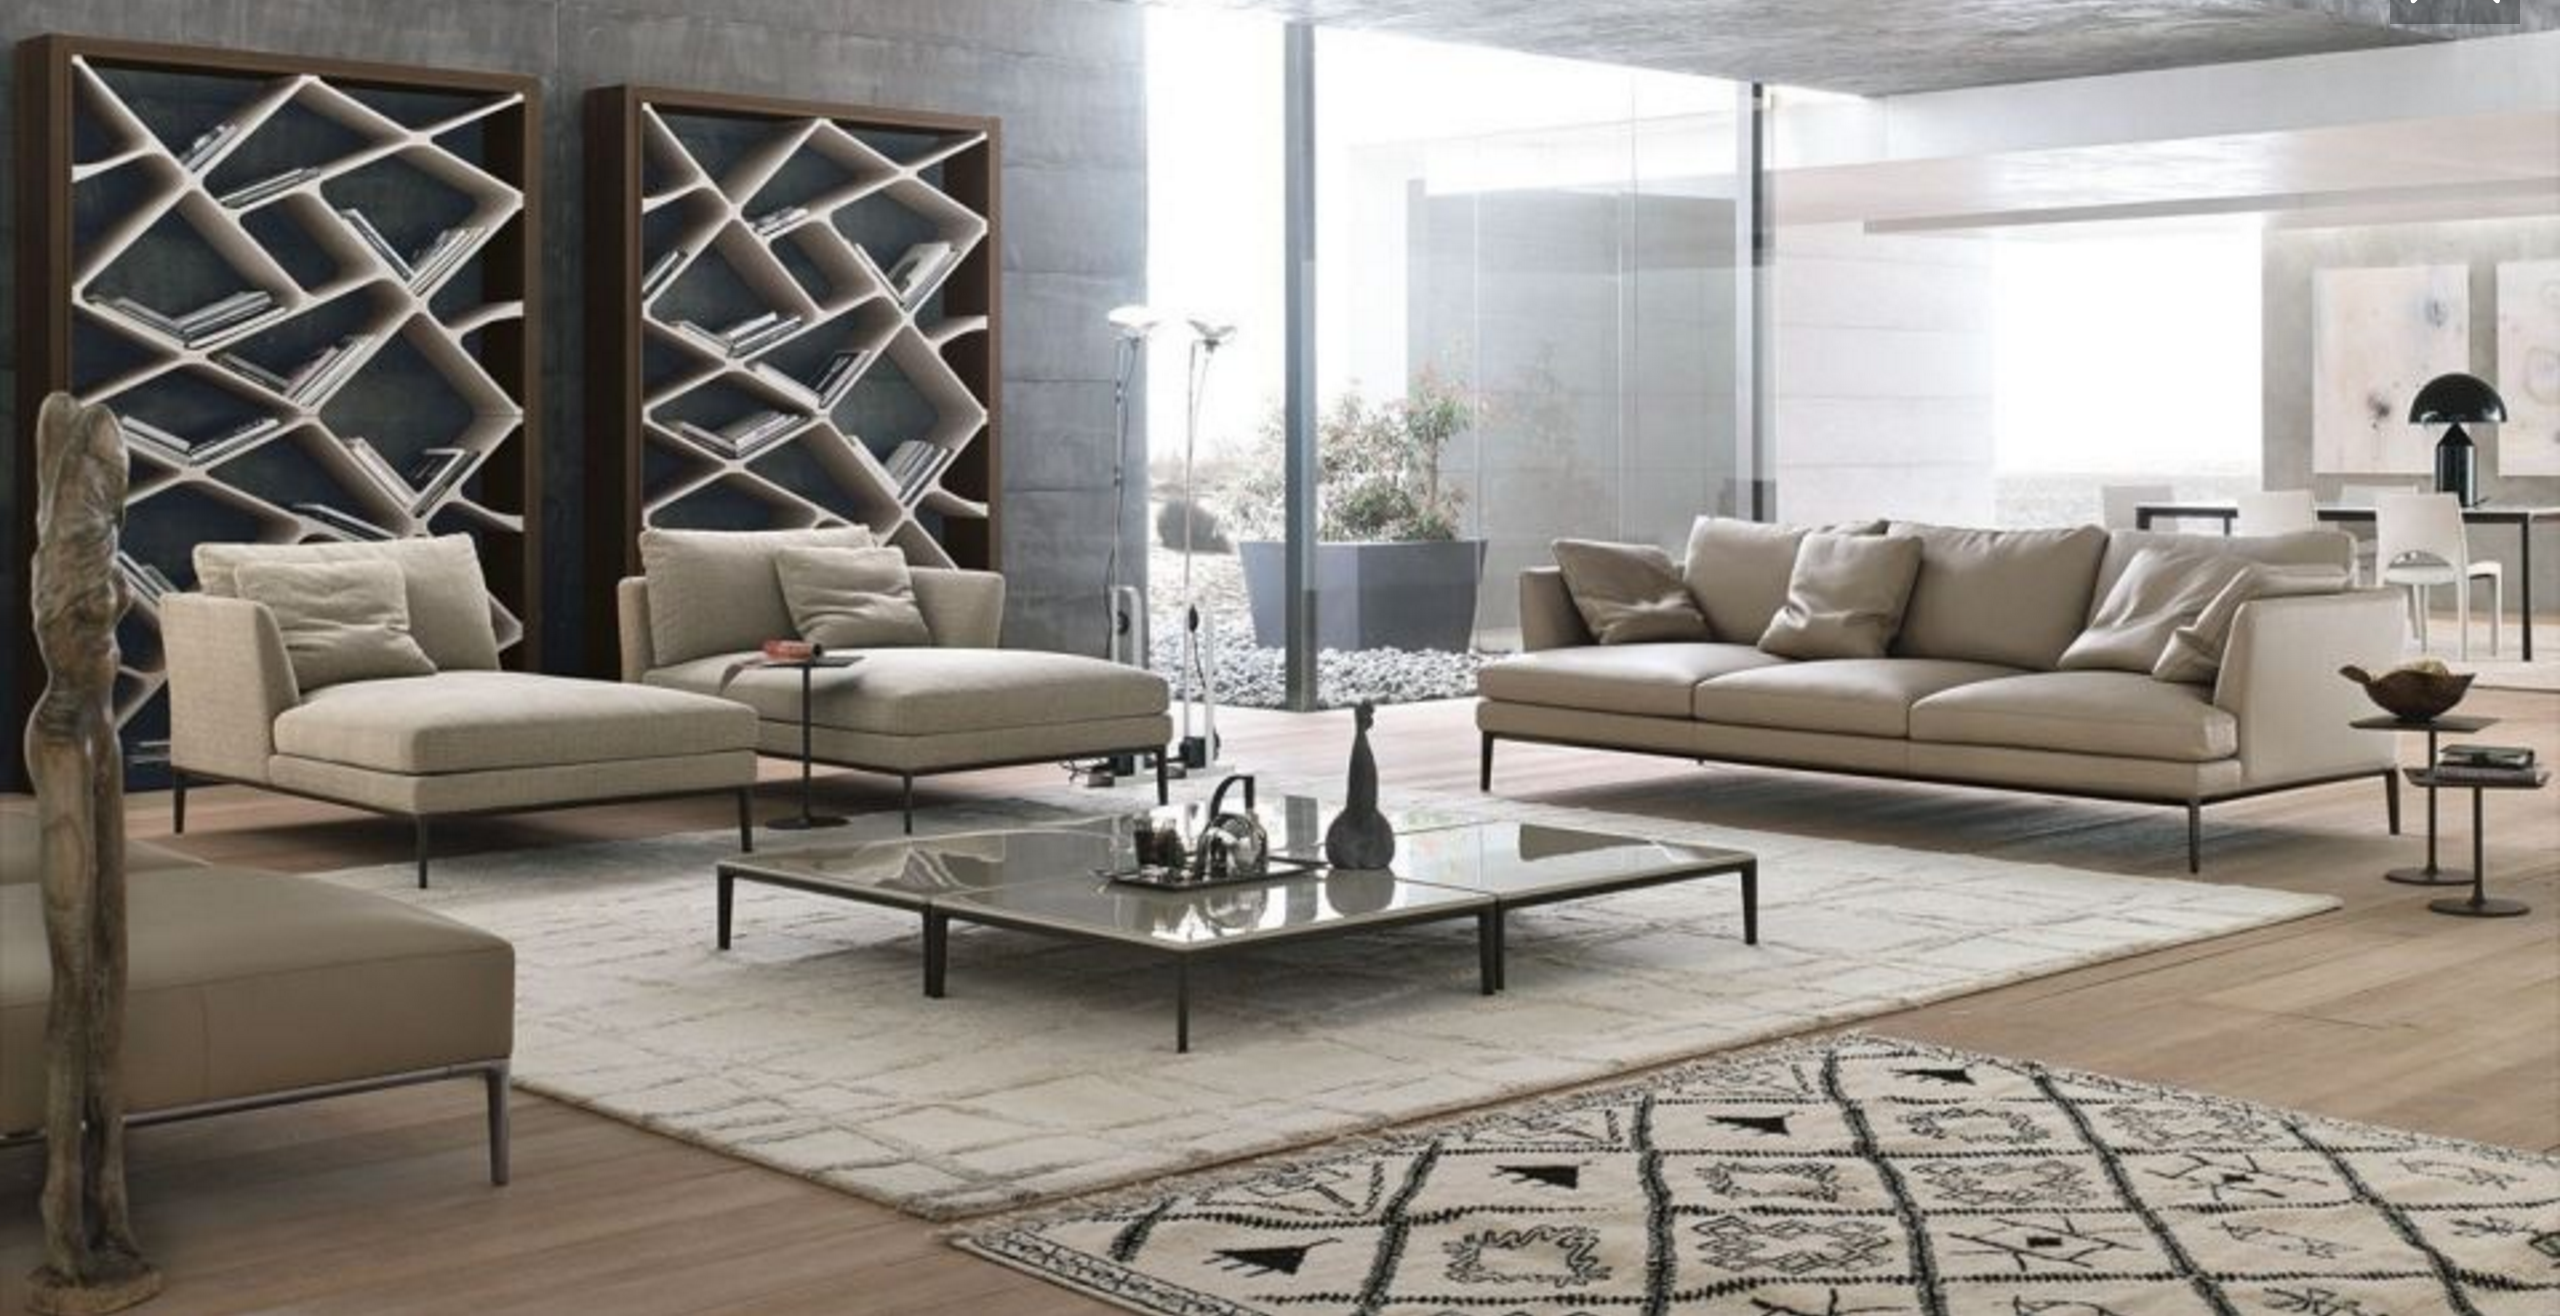 good quality living room furniture%0A Compelling pieces from NIDO living interweave to create an attractive   comfortable home  High Quality FurnitureUnique